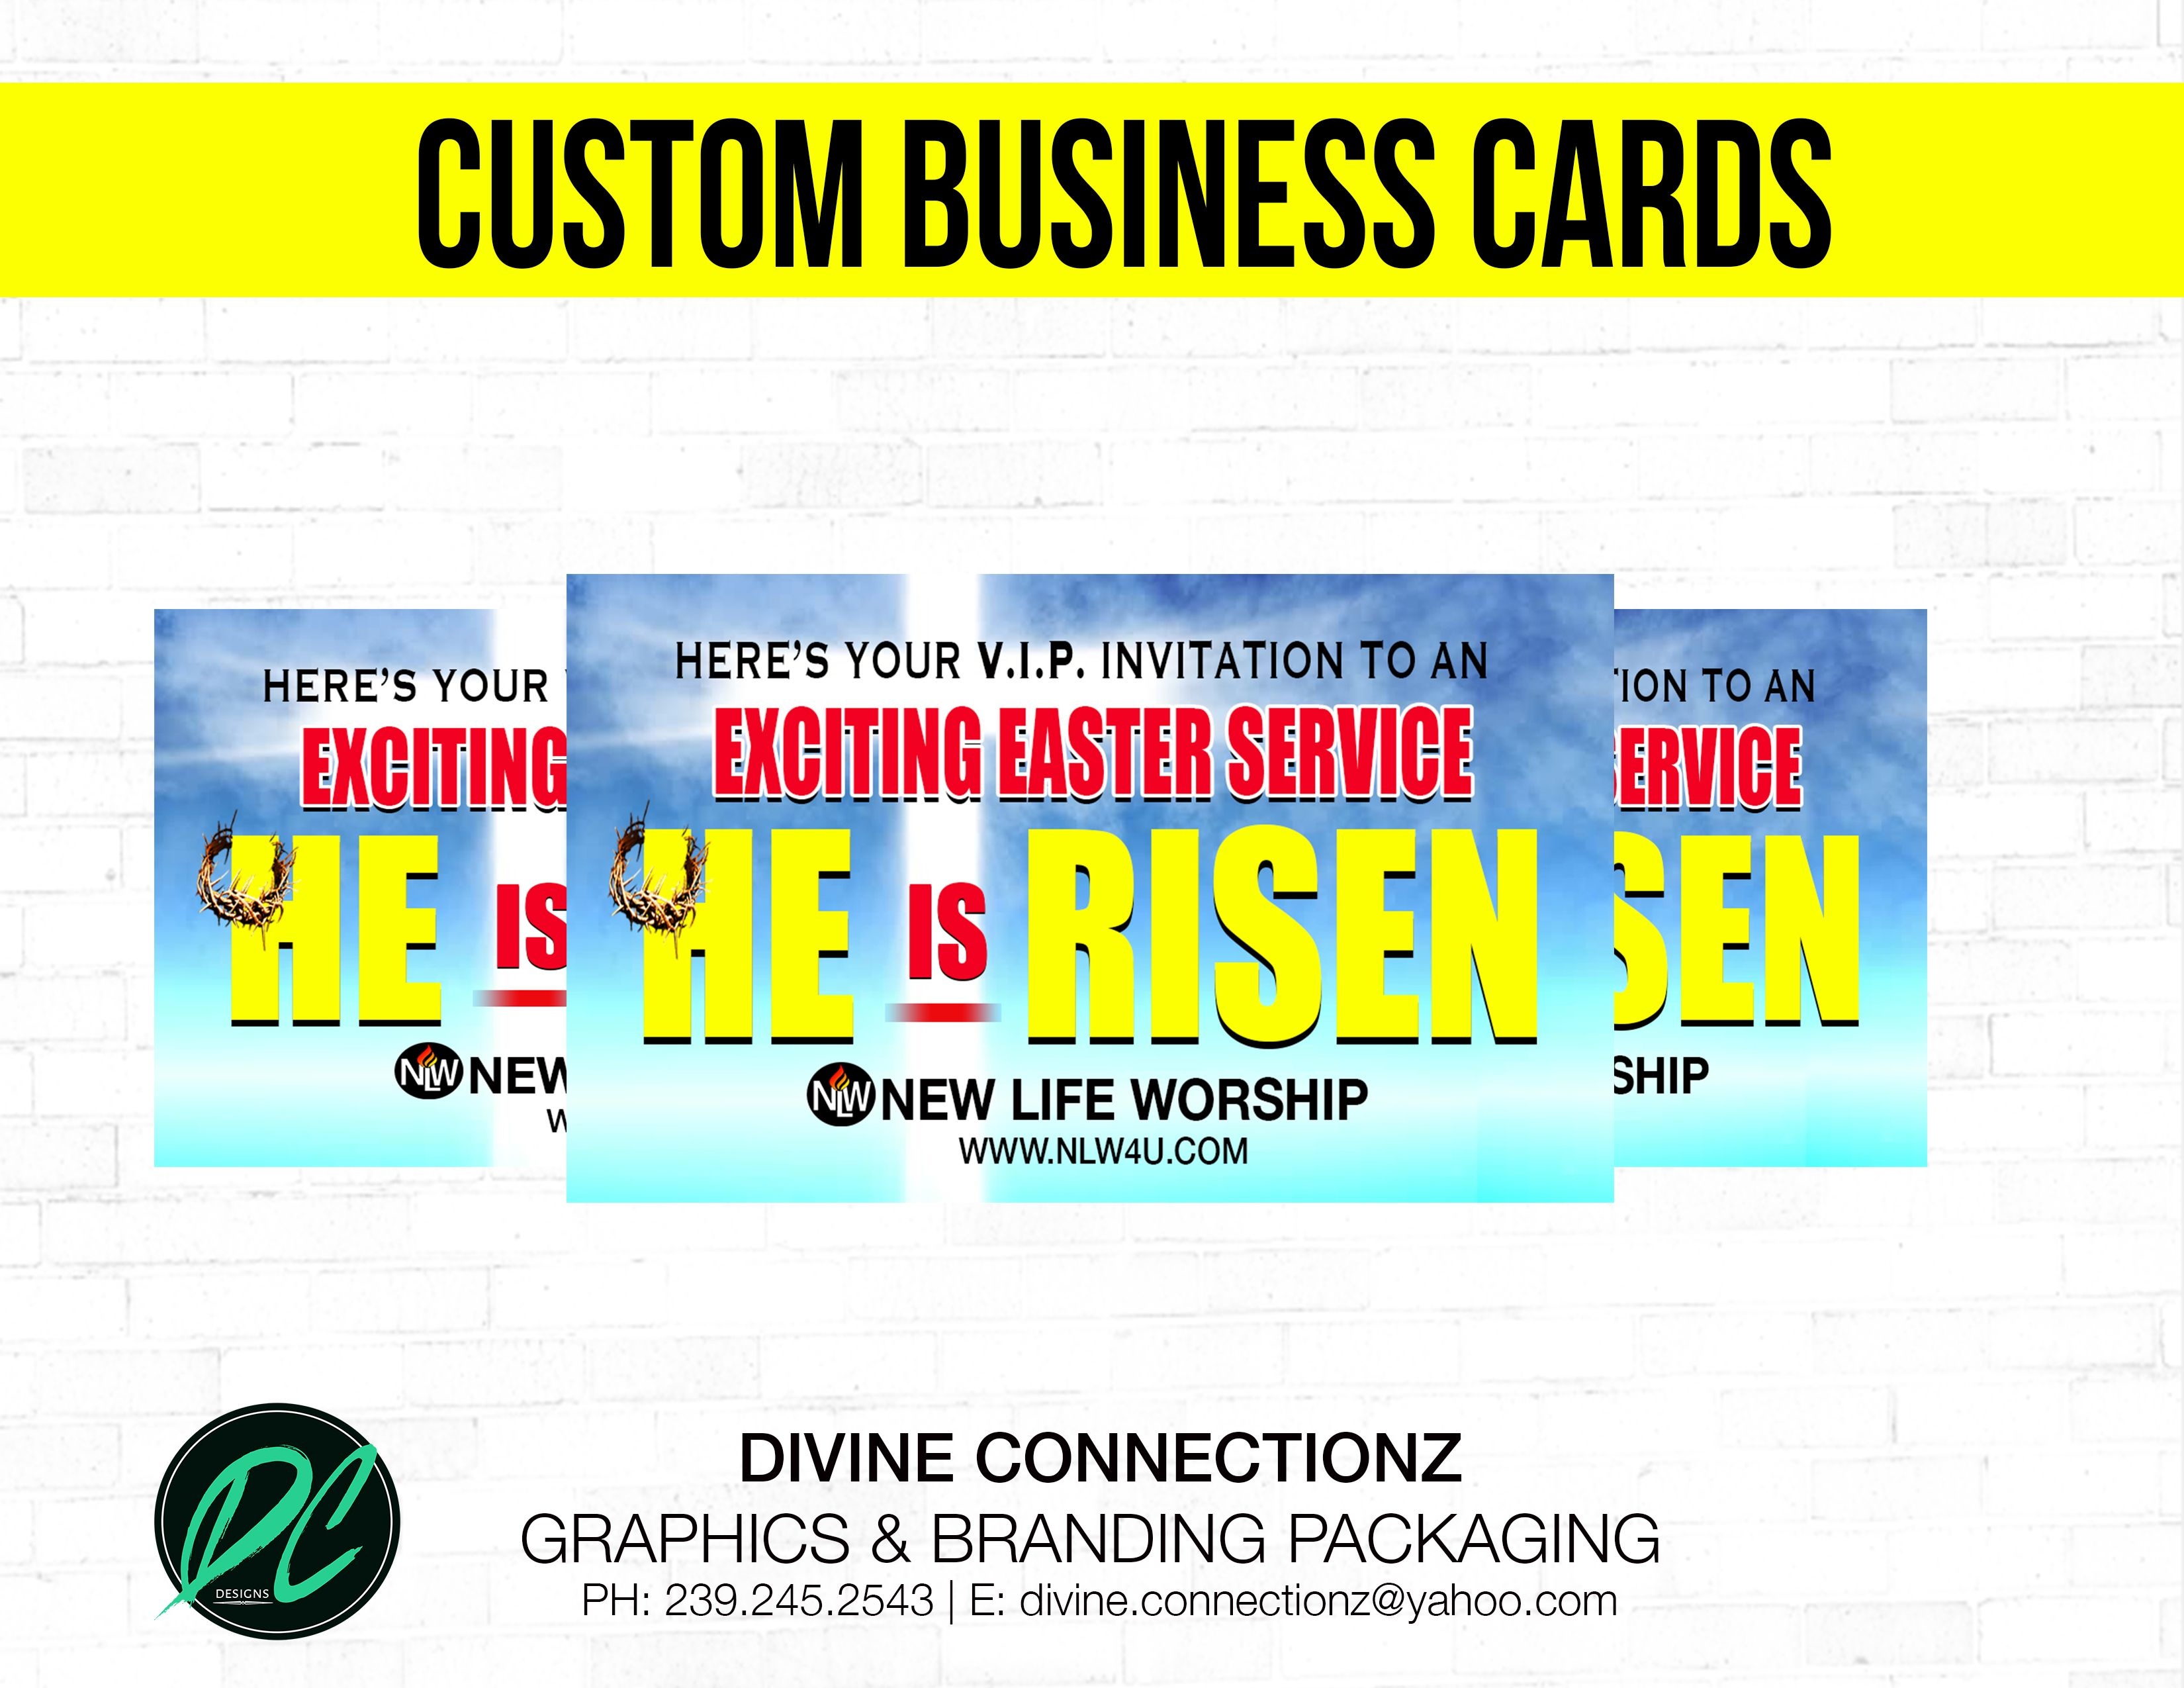 DC DESIGNS GRAPHICS & BRANDING PACKAGING SERVICES Business Cards